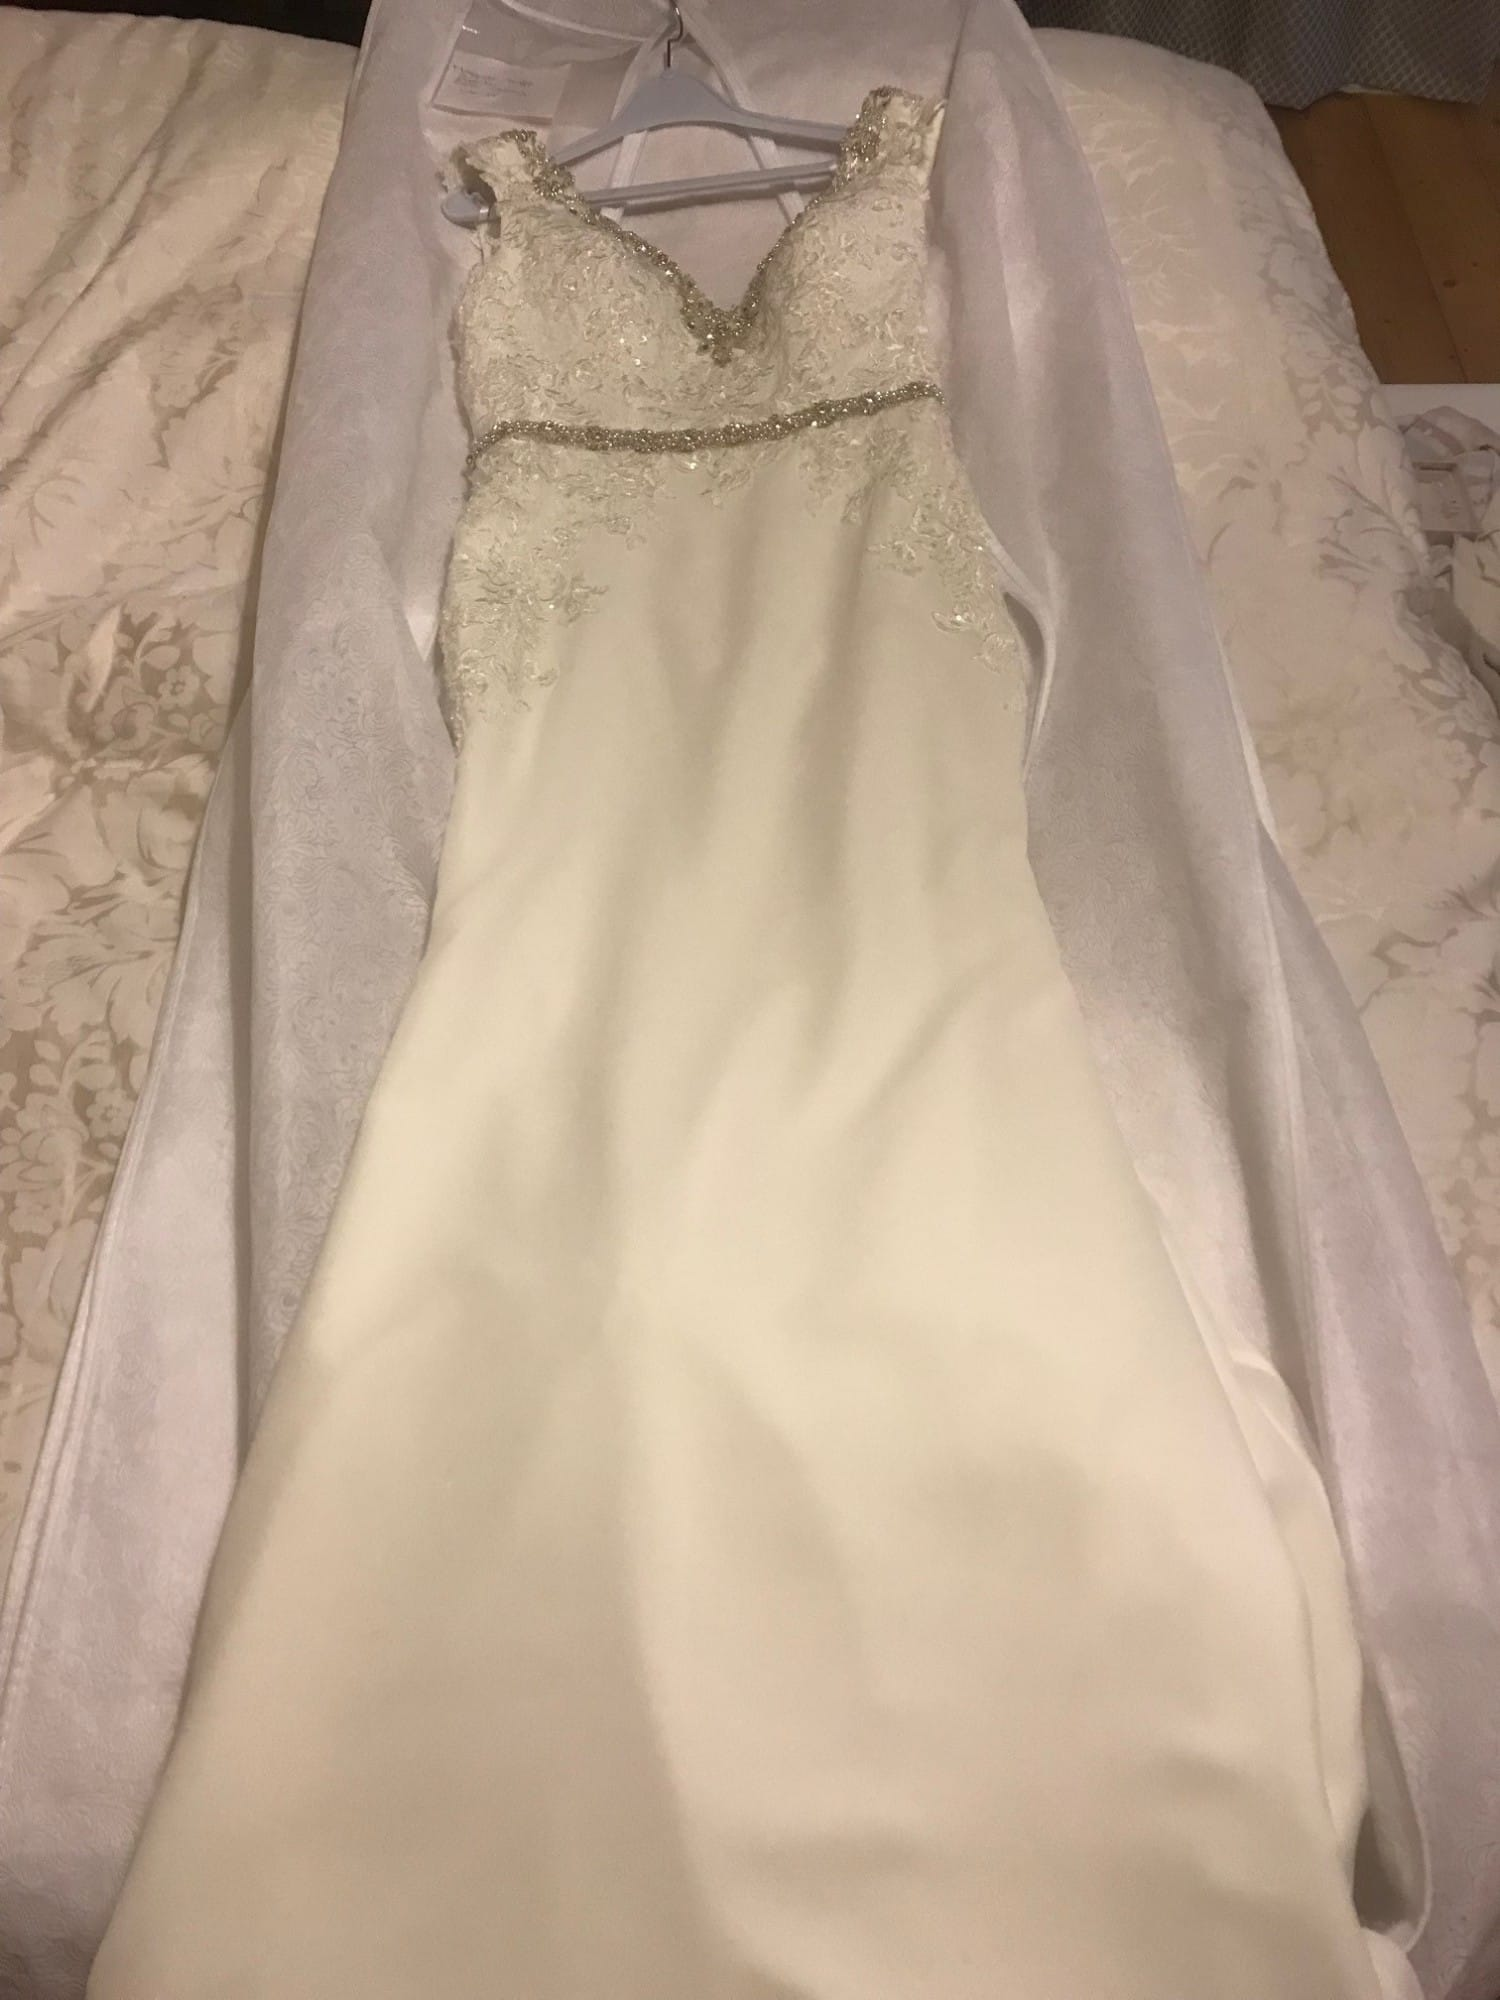 Unworn Margaret Moreland dress